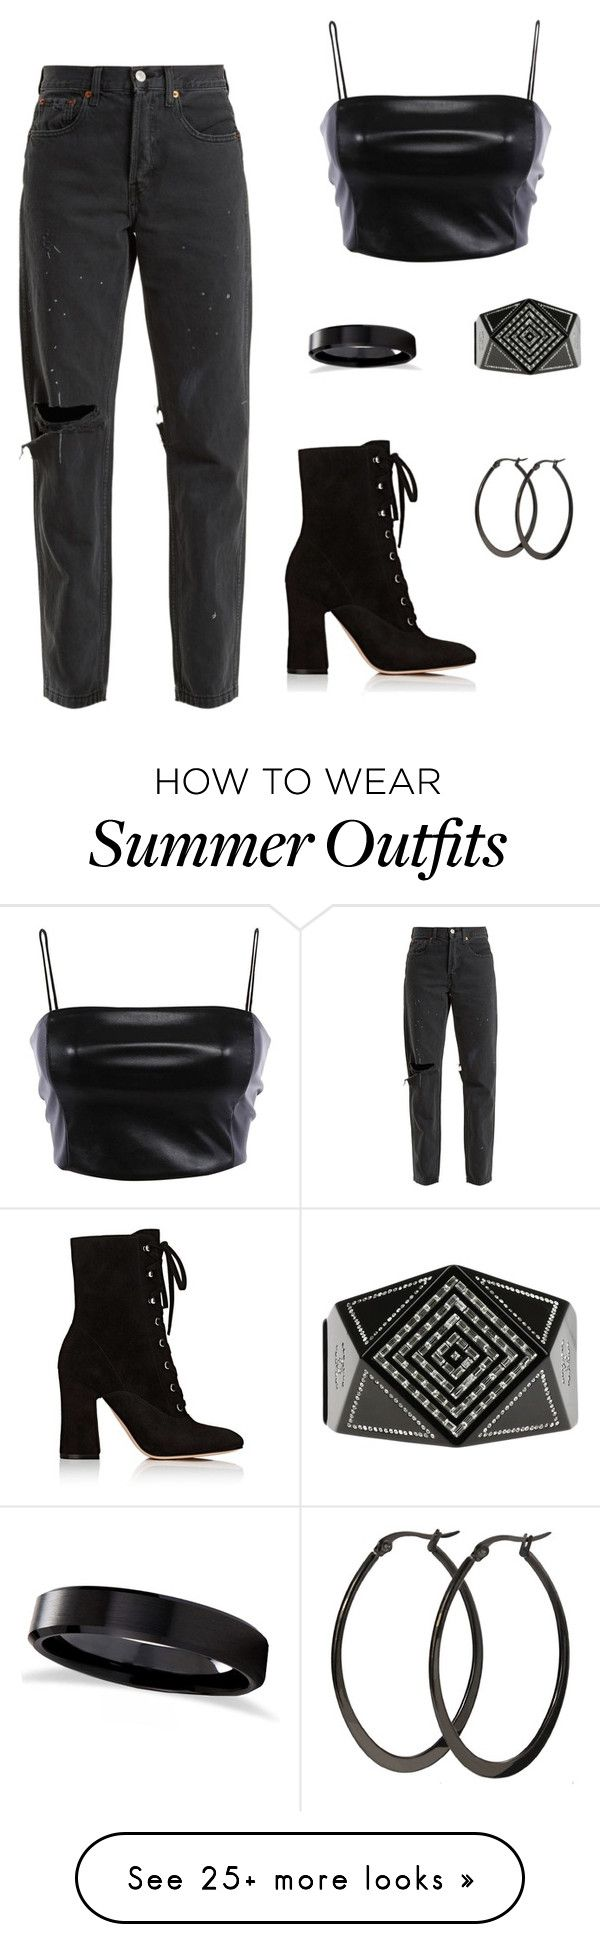 """"""""""" by taylorharvey09 on Polyvore featuring RE/DONE, Gianvito Rossi, Allurez, Chanel and allblackoutfit"""